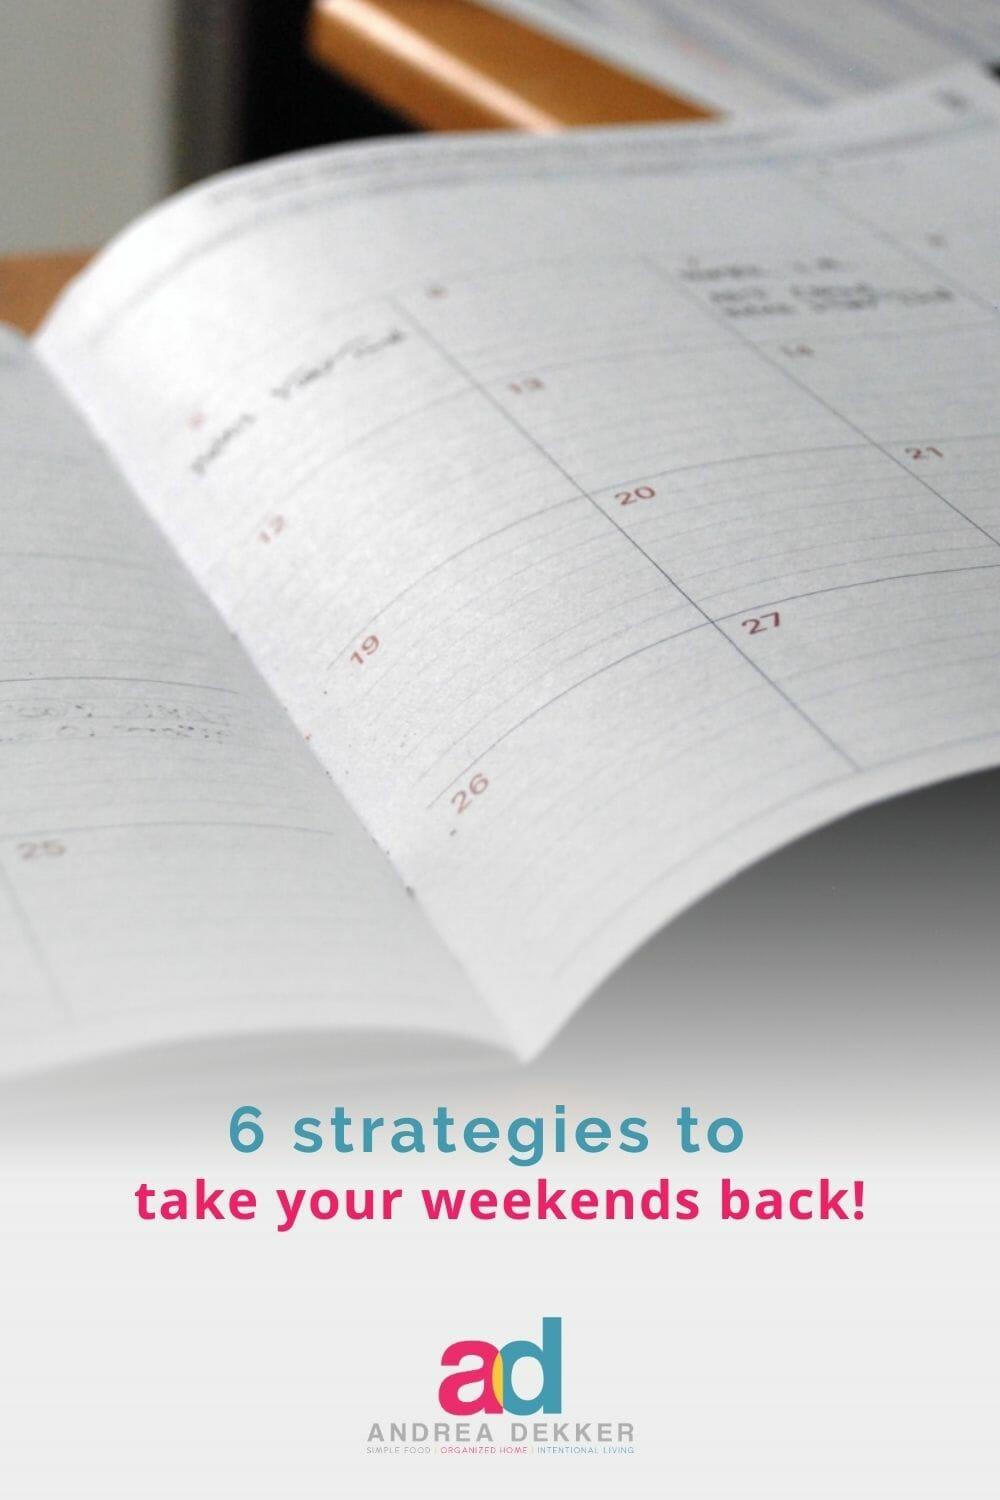 Weekends don't have to be jam-packed and chaotic. These 6 strategies will help you enjoy a slower, simpler, more restful weekend (starting this week!) via @andreadekker